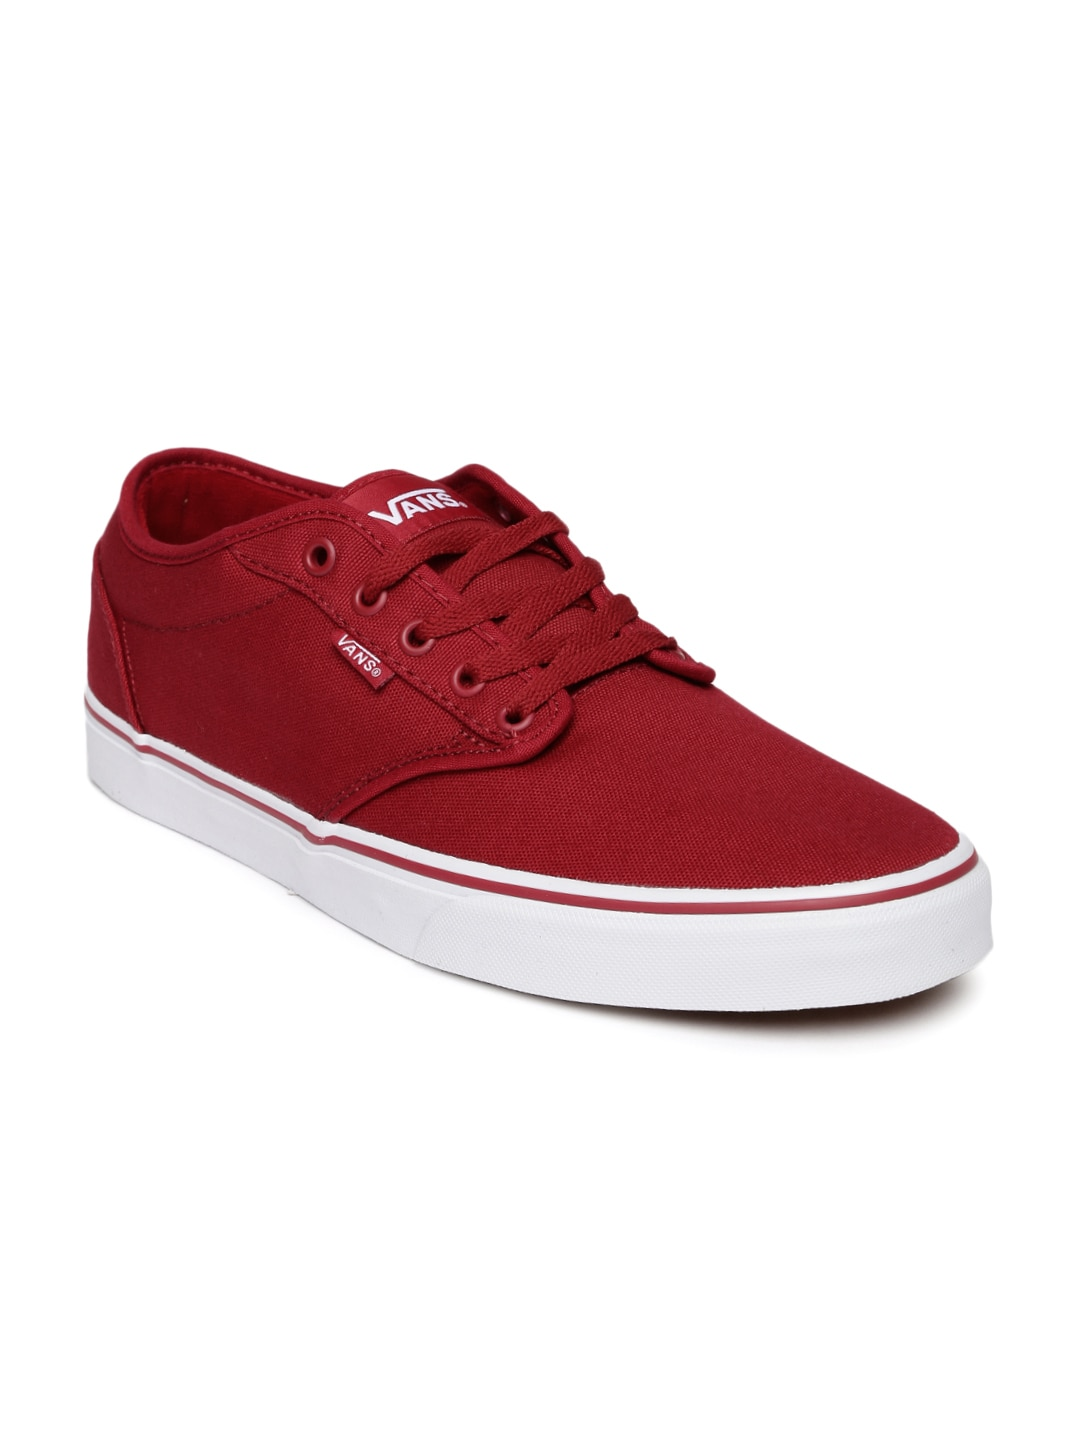 ed897944fc85 Buy red vans price   OFF43% Discounts